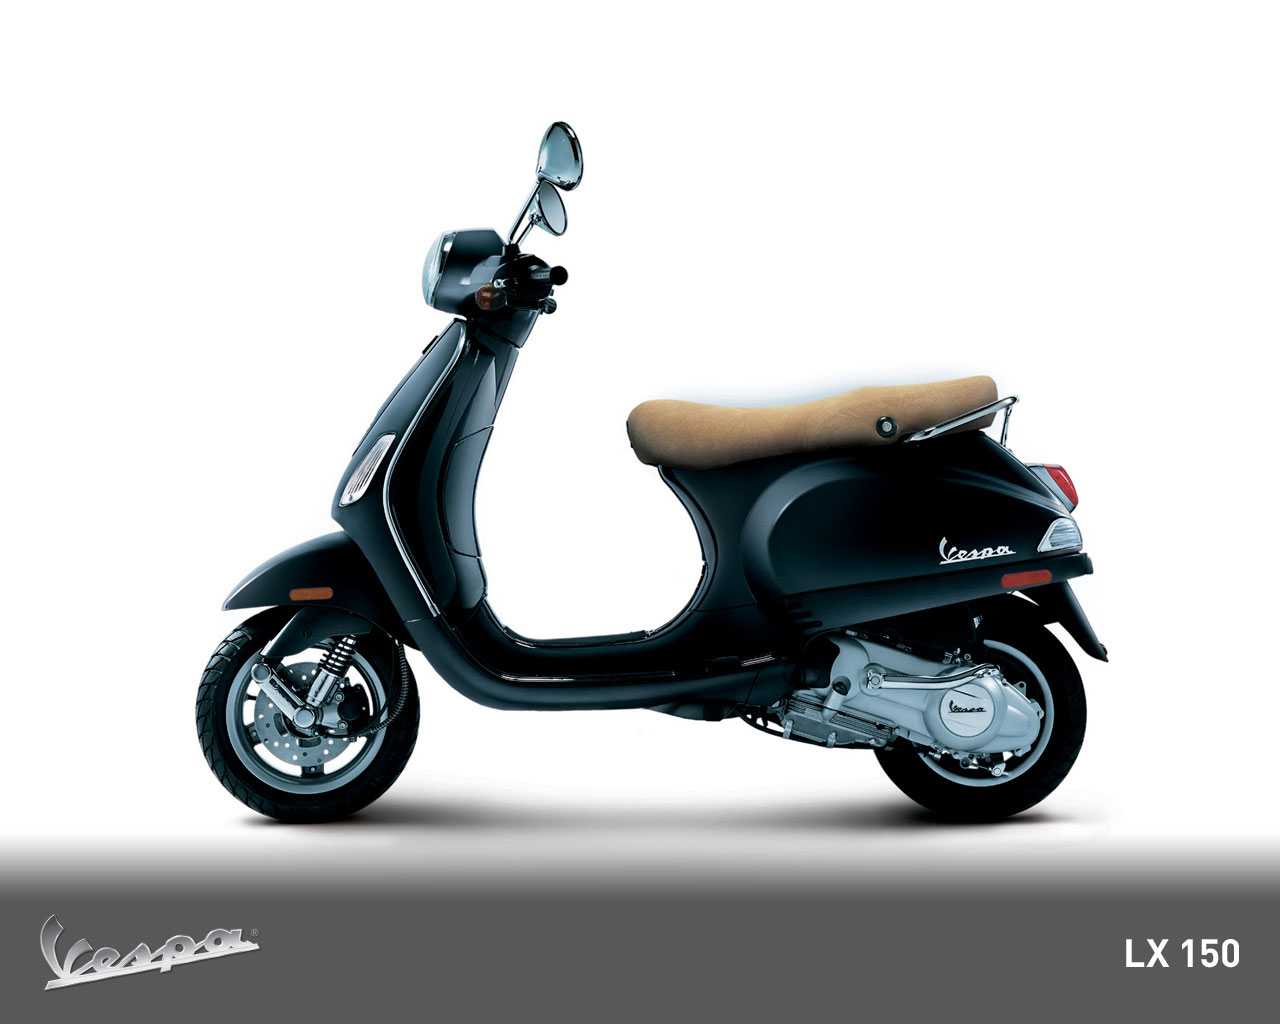 piaggio vespa lx 150 photos and comments. Black Bedroom Furniture Sets. Home Design Ideas